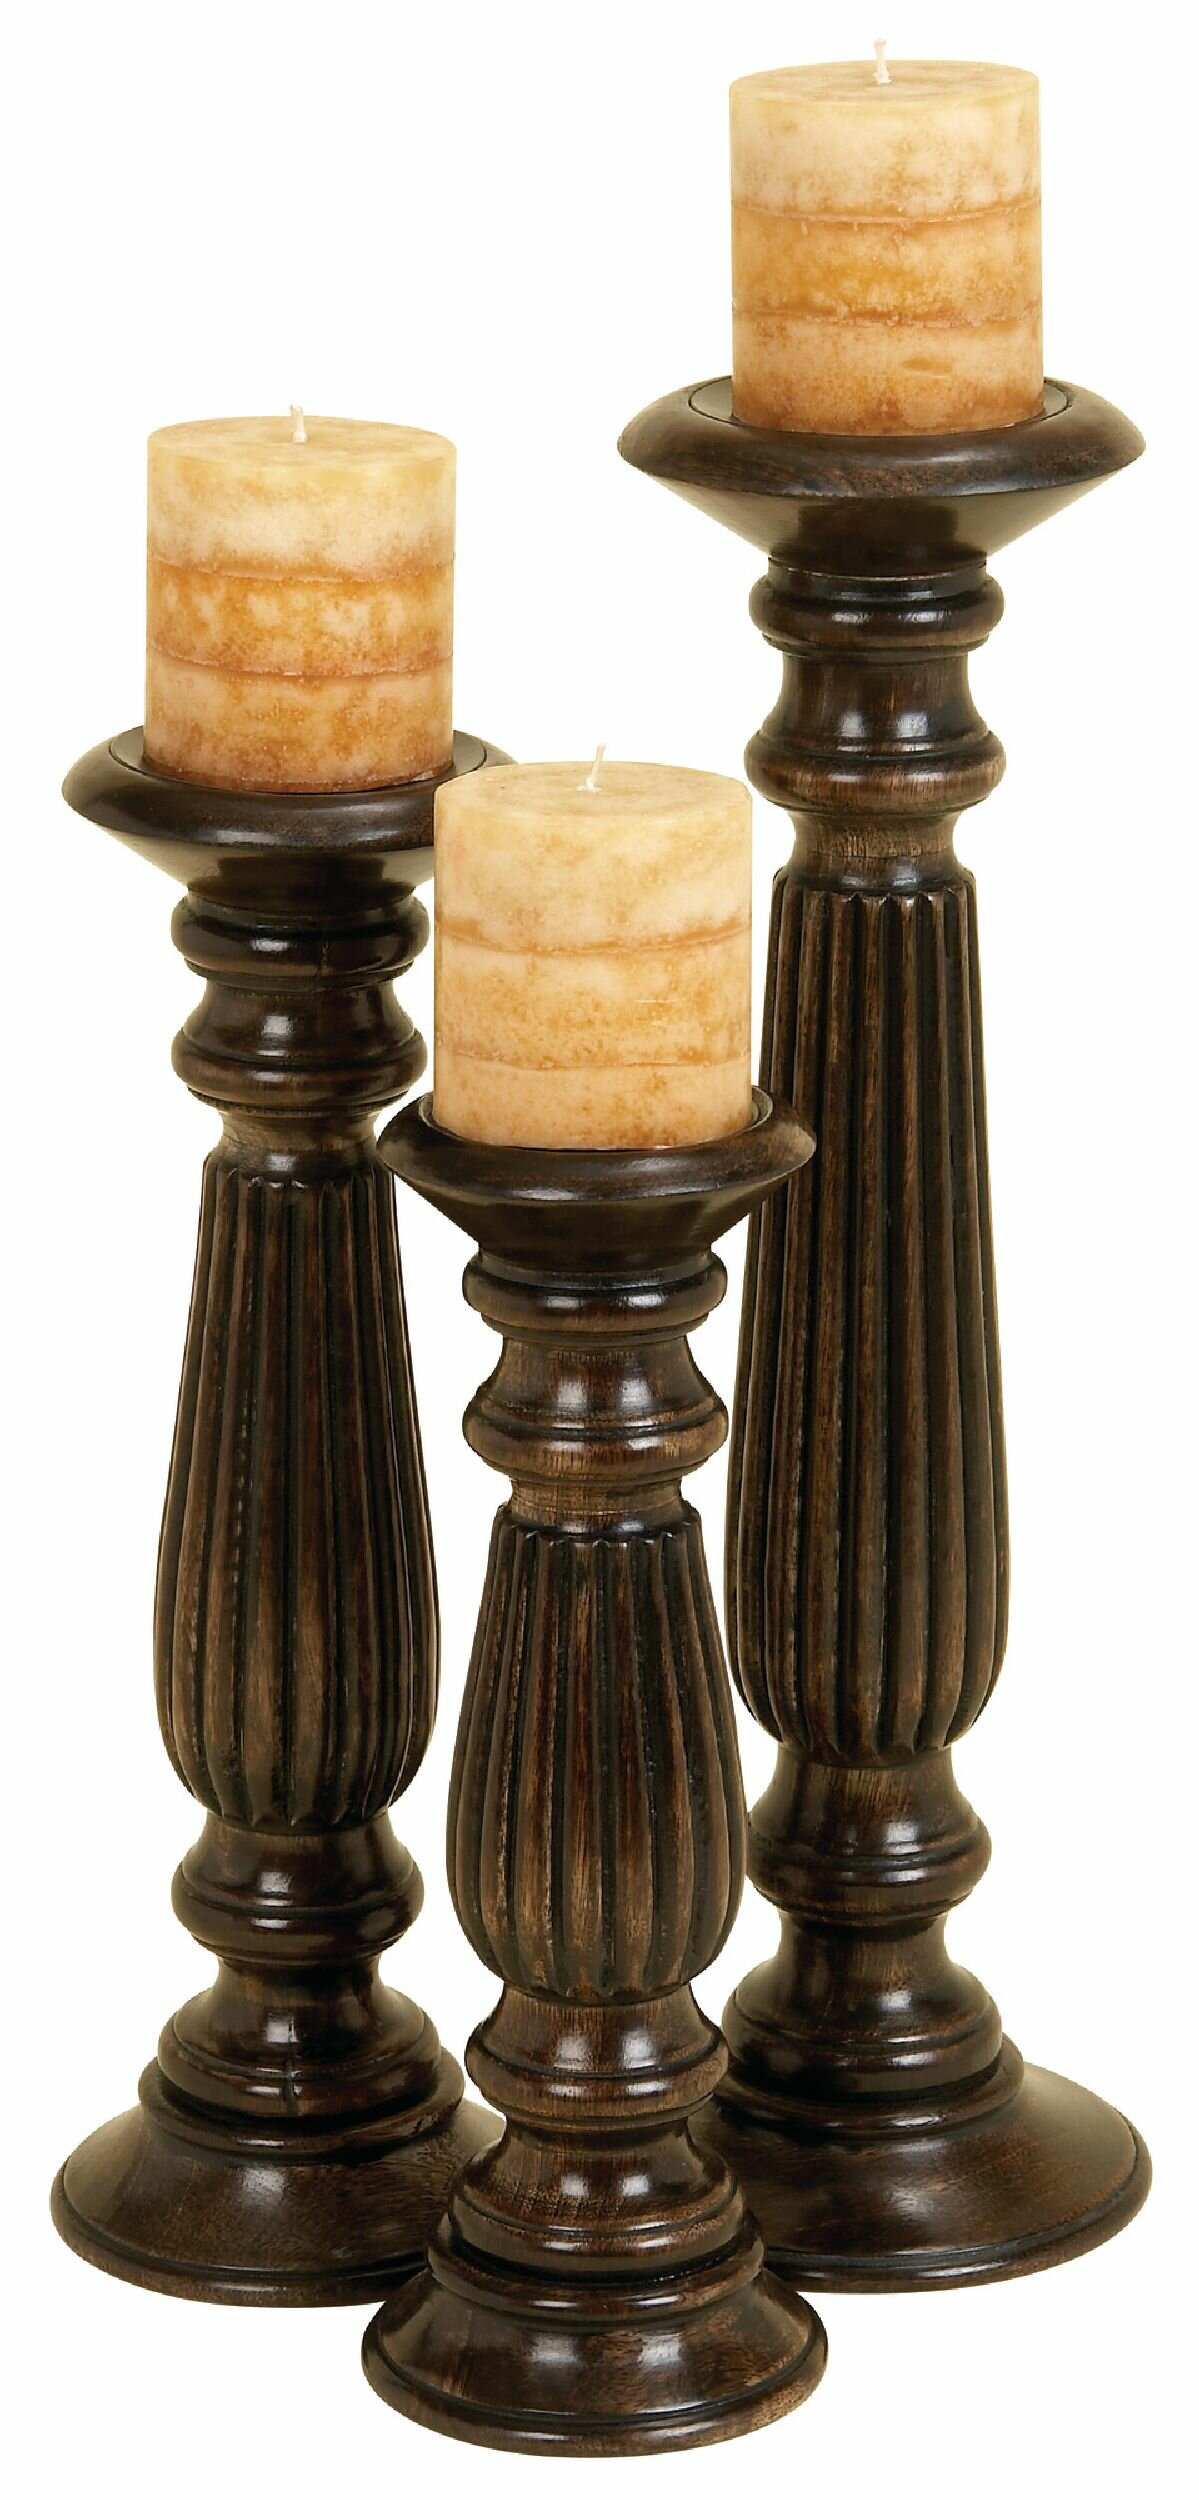 Stupendous Farmhouse Rustic Candle Holders Birch Lane Best Image Libraries Thycampuscom